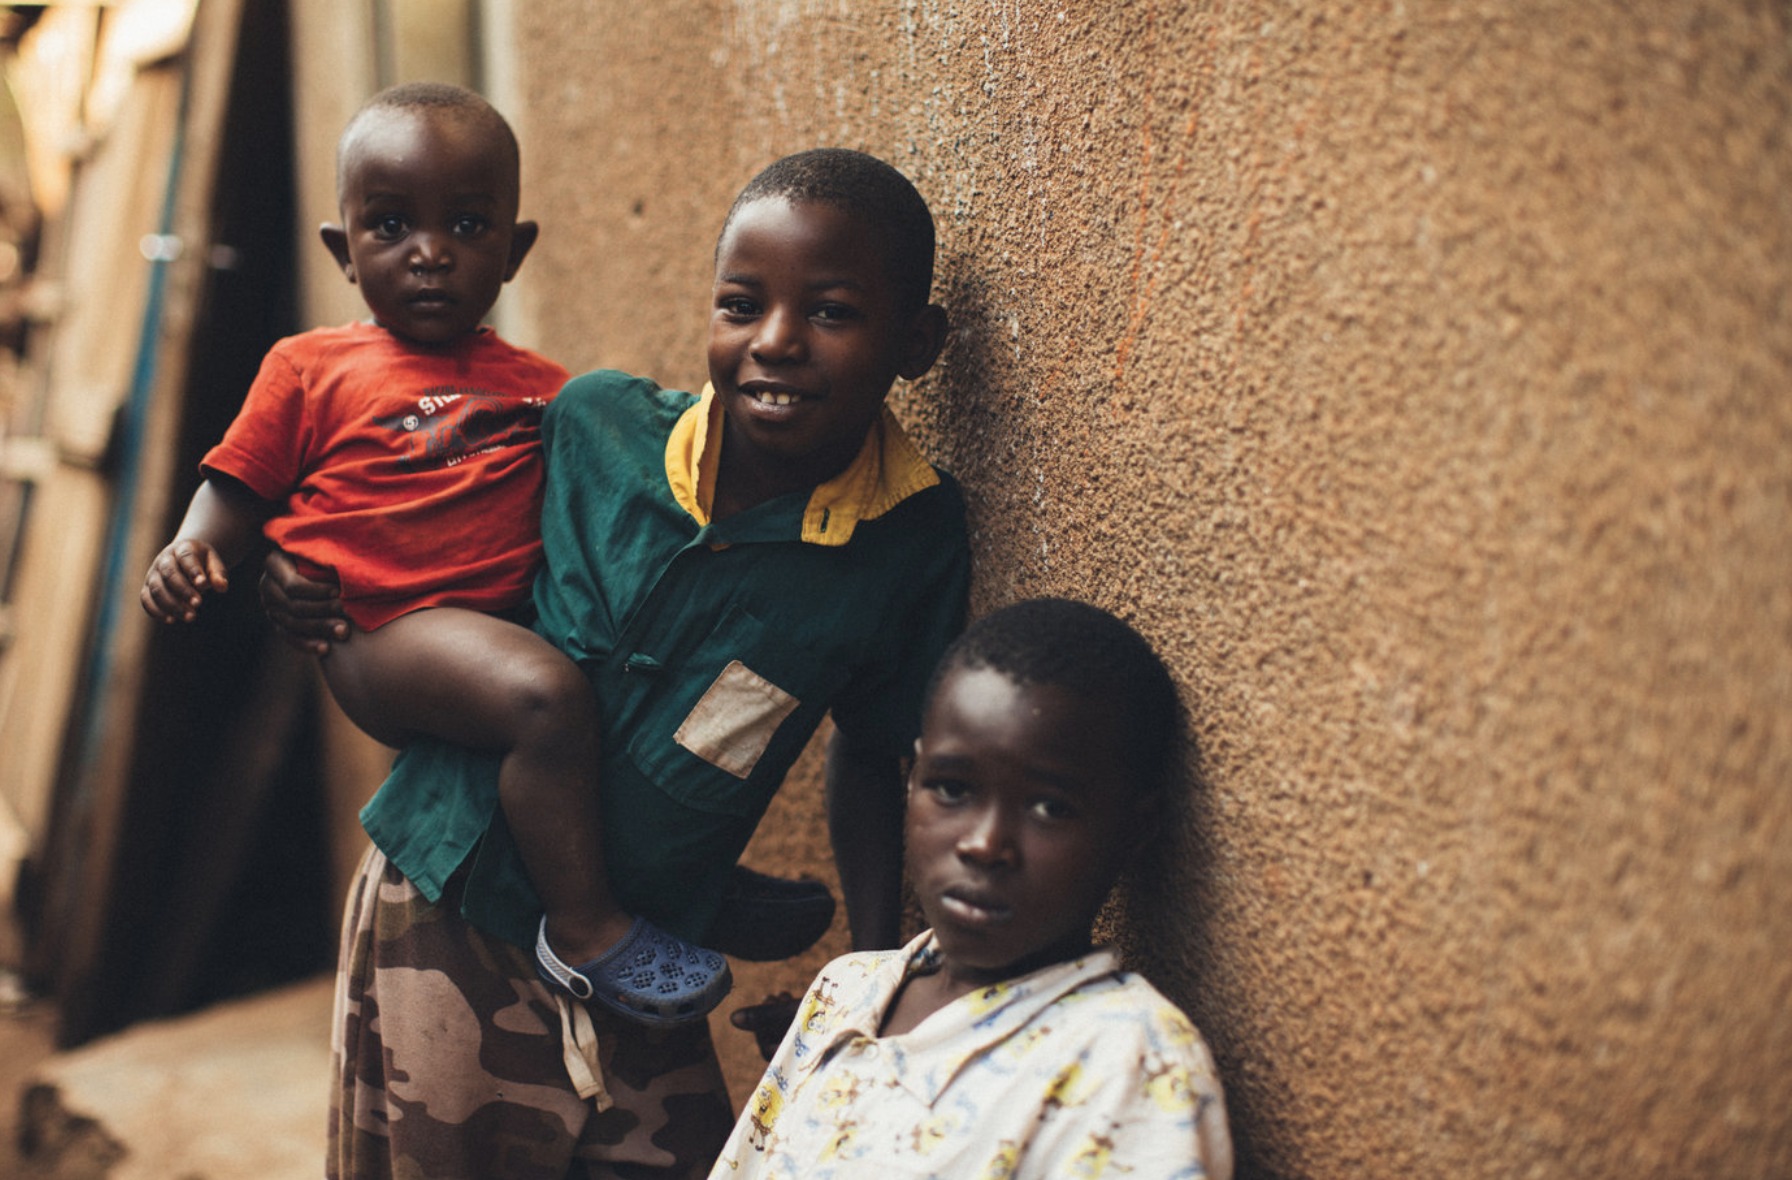 LOCATE THOSE IN NEED. - Our on the ground team, in Uganda, locate children in high-poverty and high-risk areas where children are unable to attend school + afford an education.